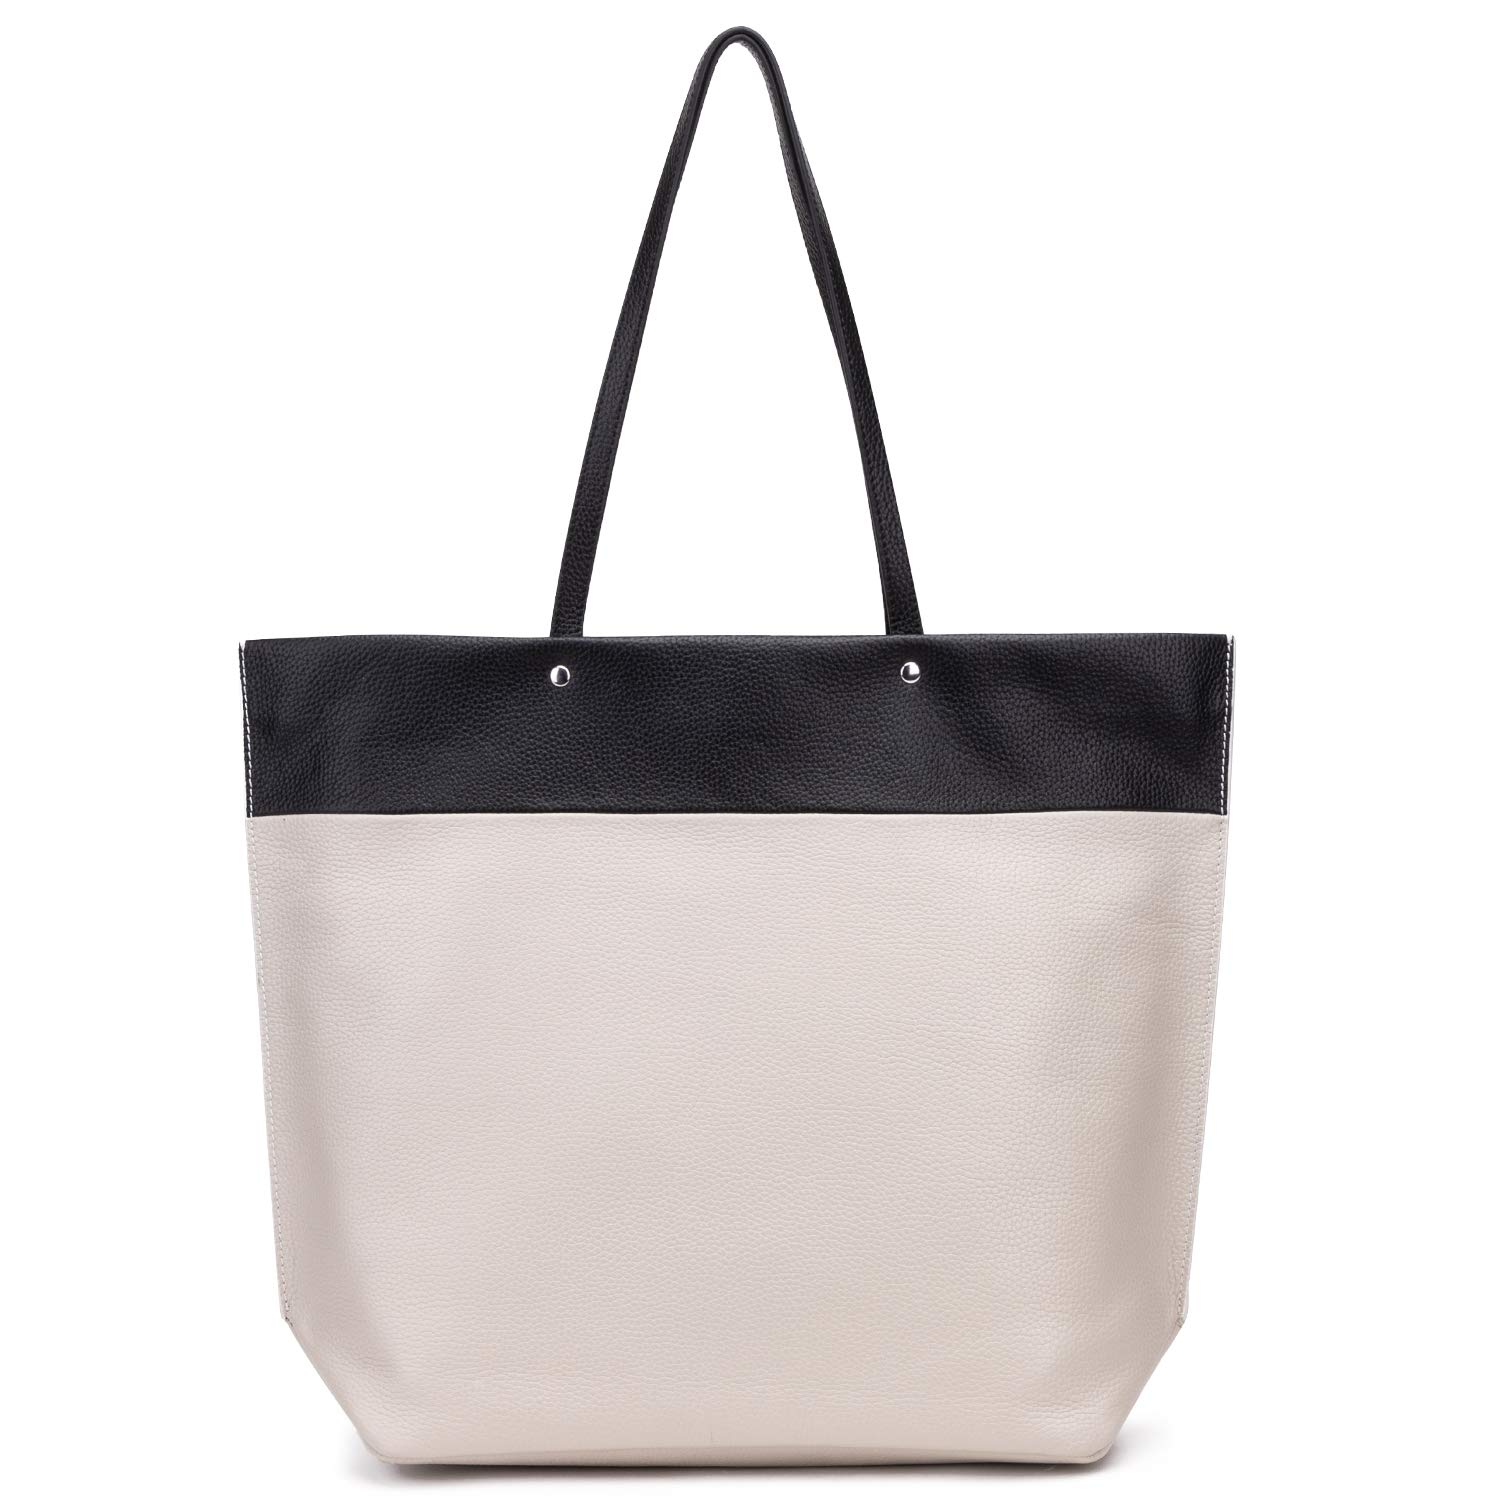 GIONAR RFID Leather Tote Bag Zipper Closure Off White Black Color Block Purses Handbags Designer Shoulder Bag